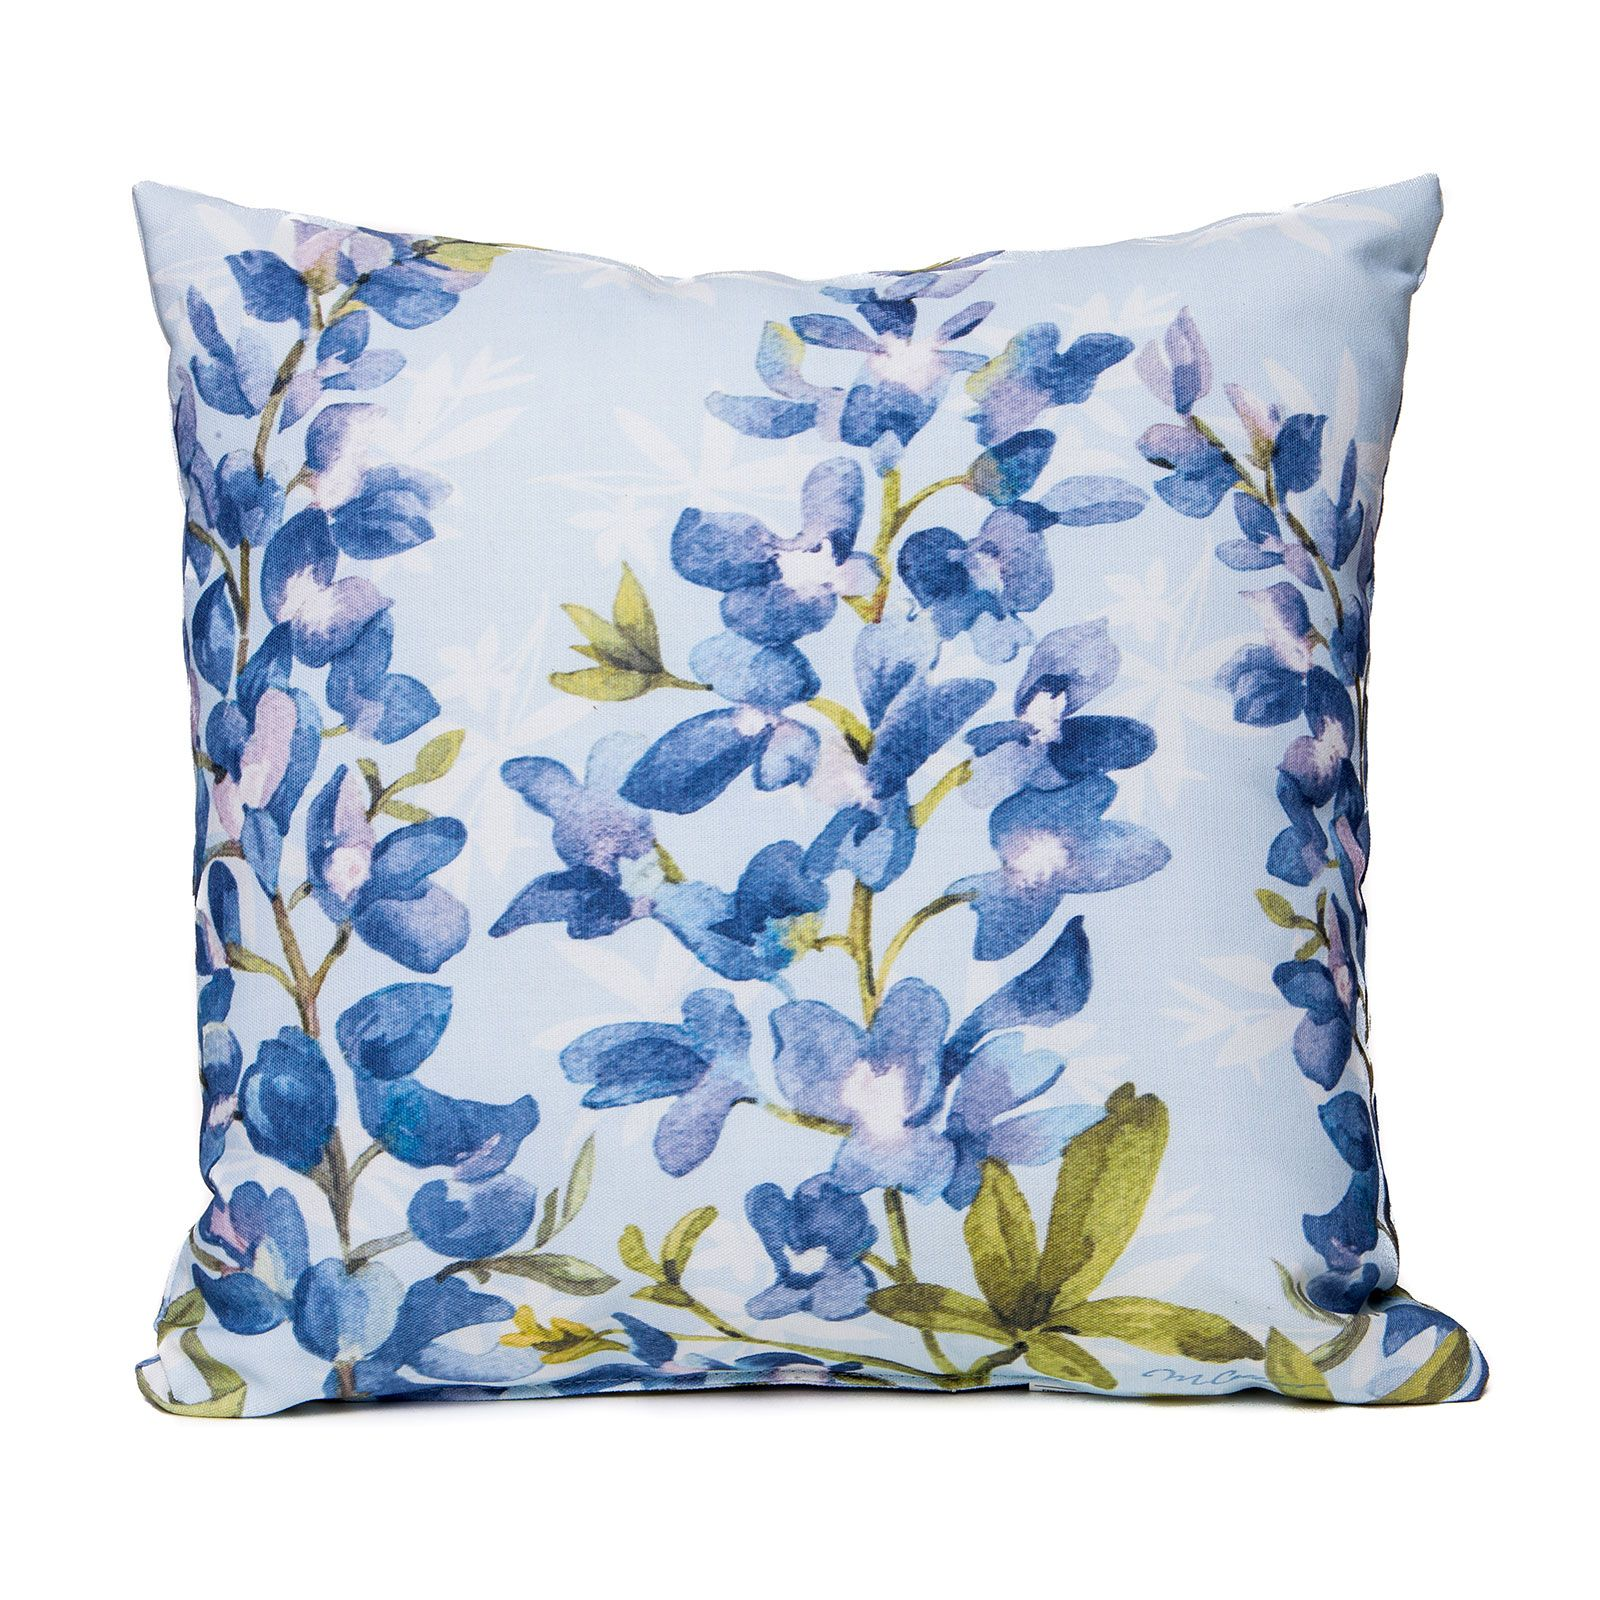 Bluebonnet Watercolor Accent Pillow